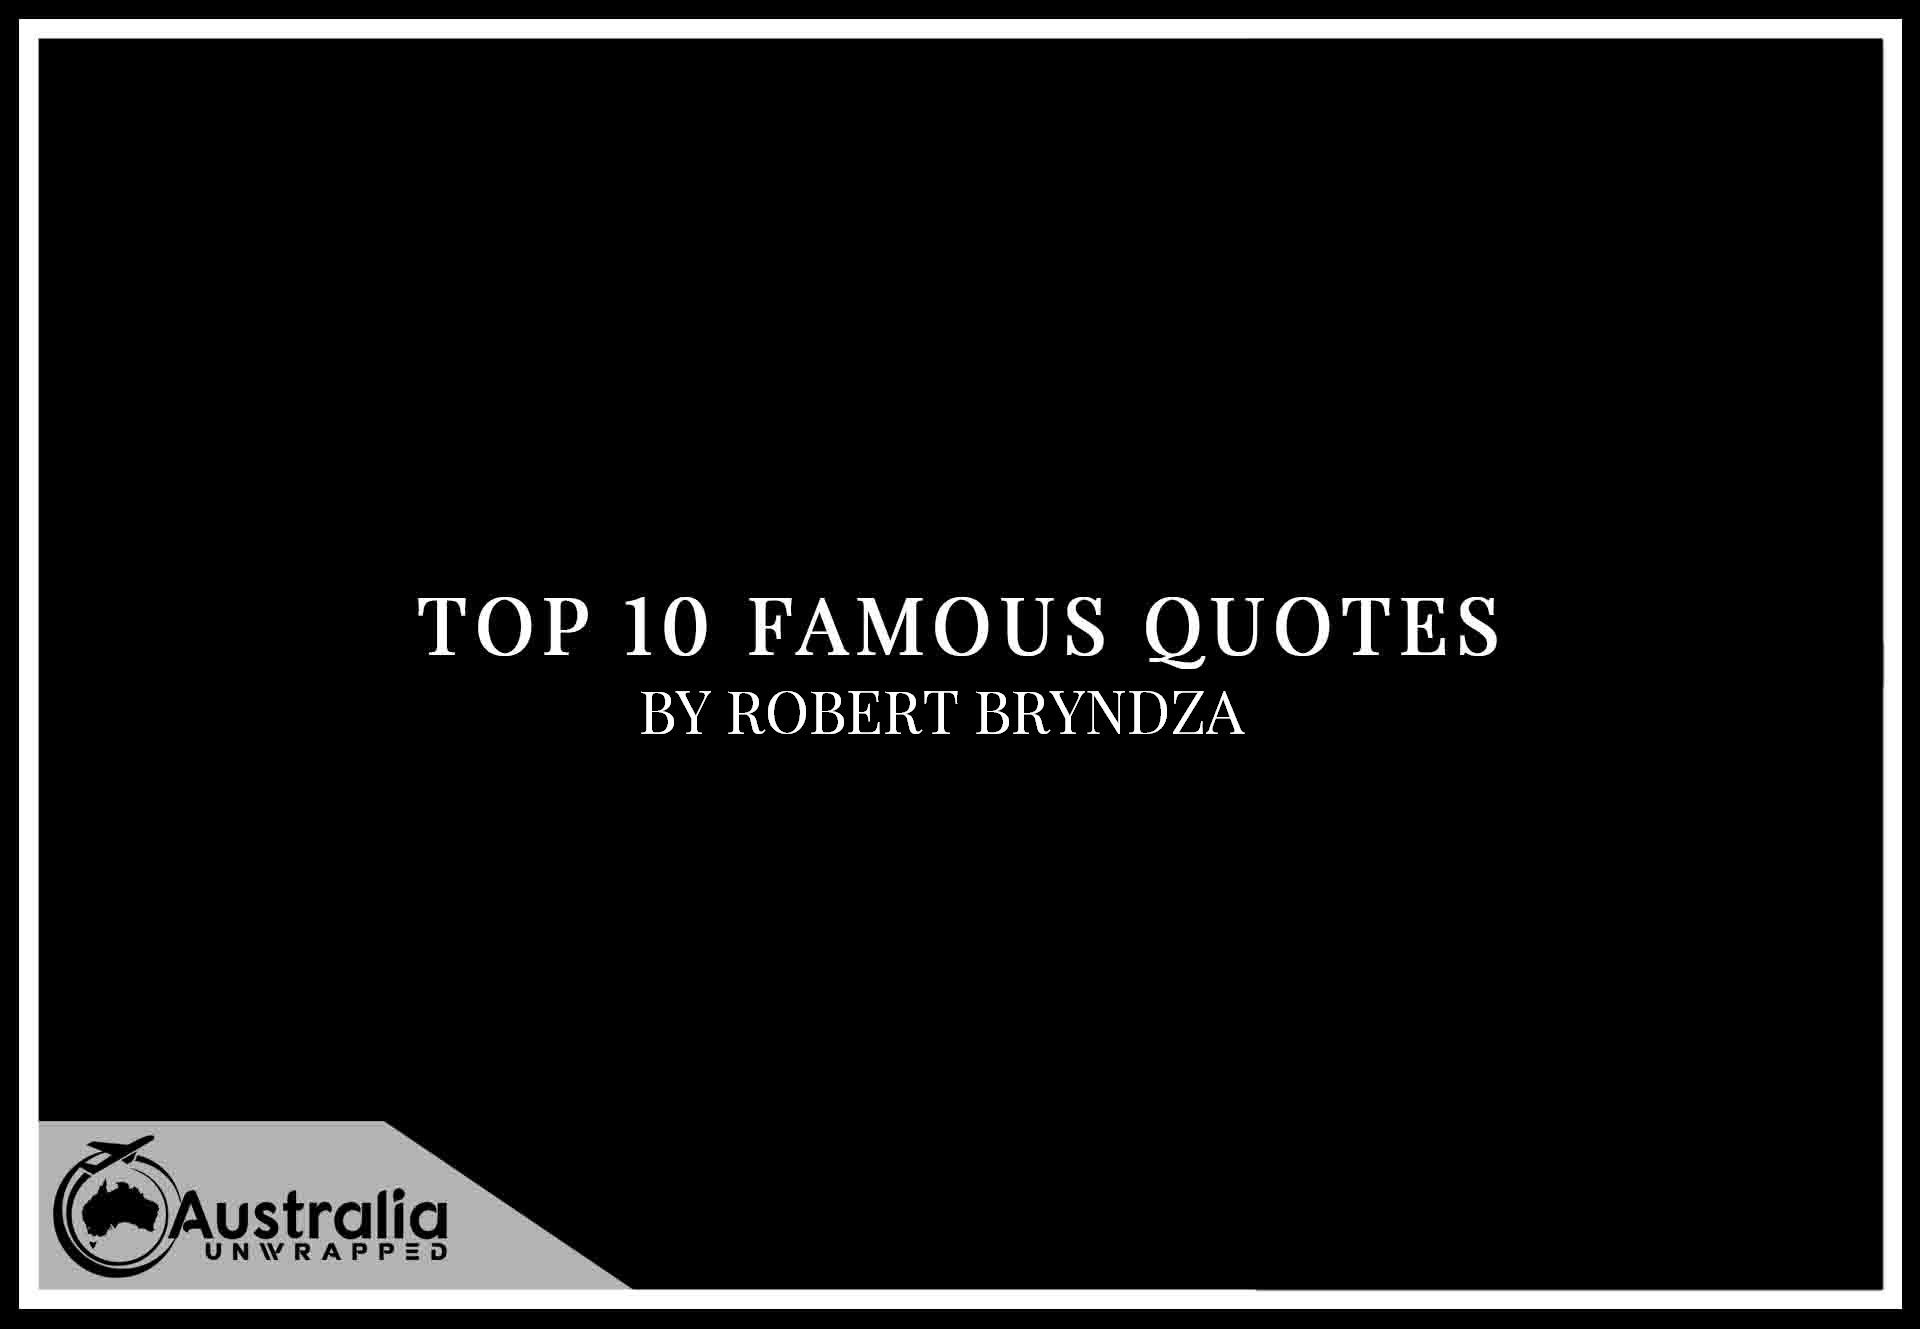 Top 10 Famous Quotes by Author Robert Bryndza